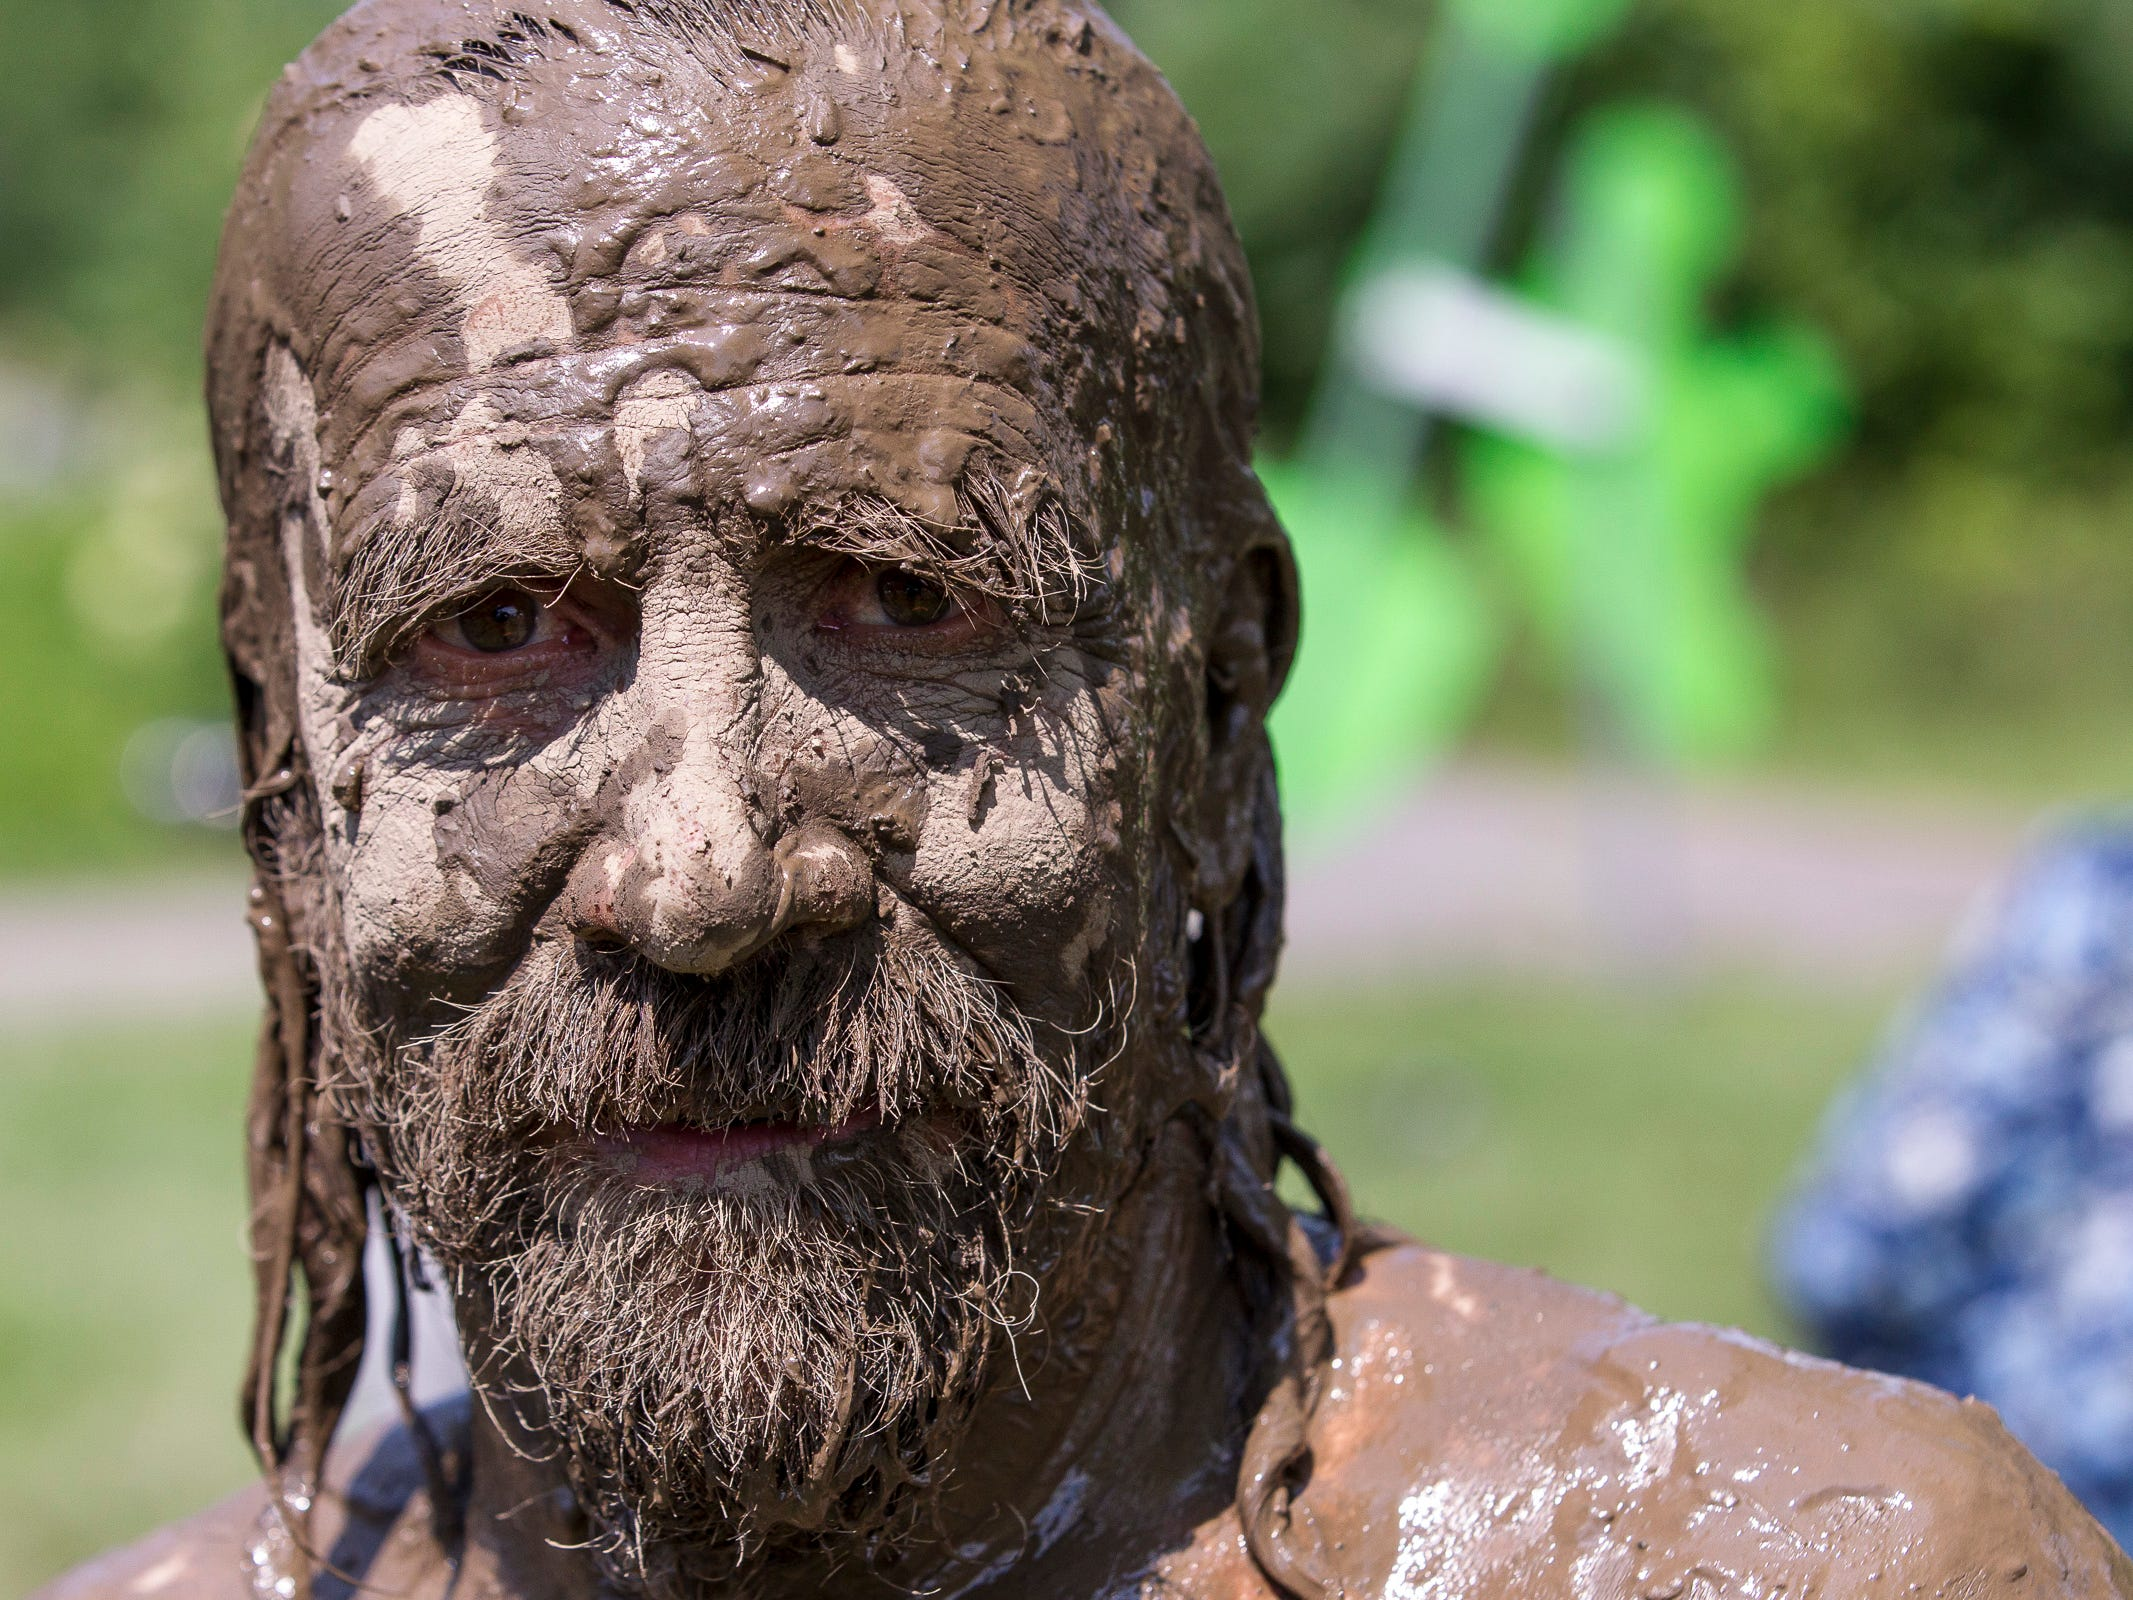 2013: The mud on the face of John Rogers of Ithaca begins to dry as he explores the Ithaca Childrens Garden Sunday during the International Mud Day celebration held at Cass park.